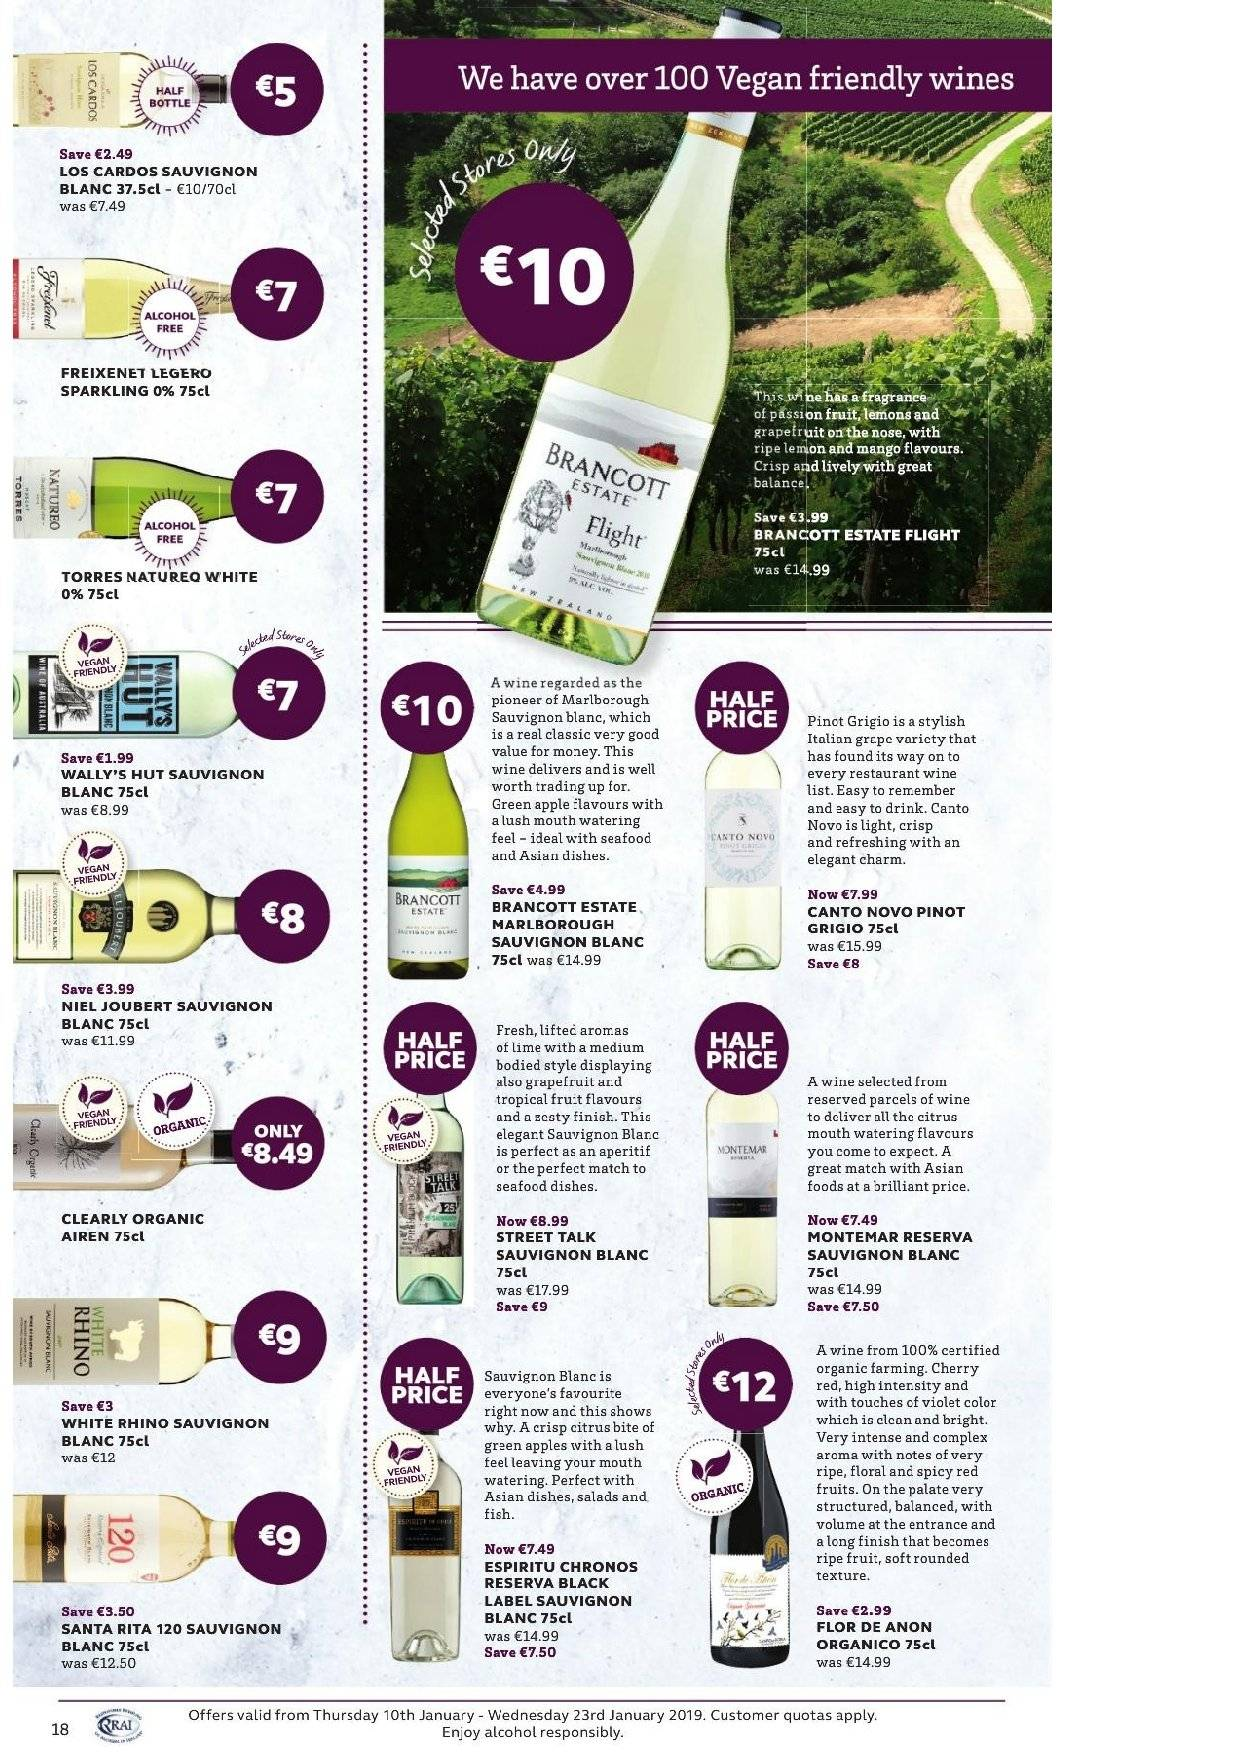 SuperValu offer  - 10.1.2019 - 23.1.2019 - Sales products - mango, apples, lemons, wine, Clearly Organic, Sauvignon Blanc. Page 35.